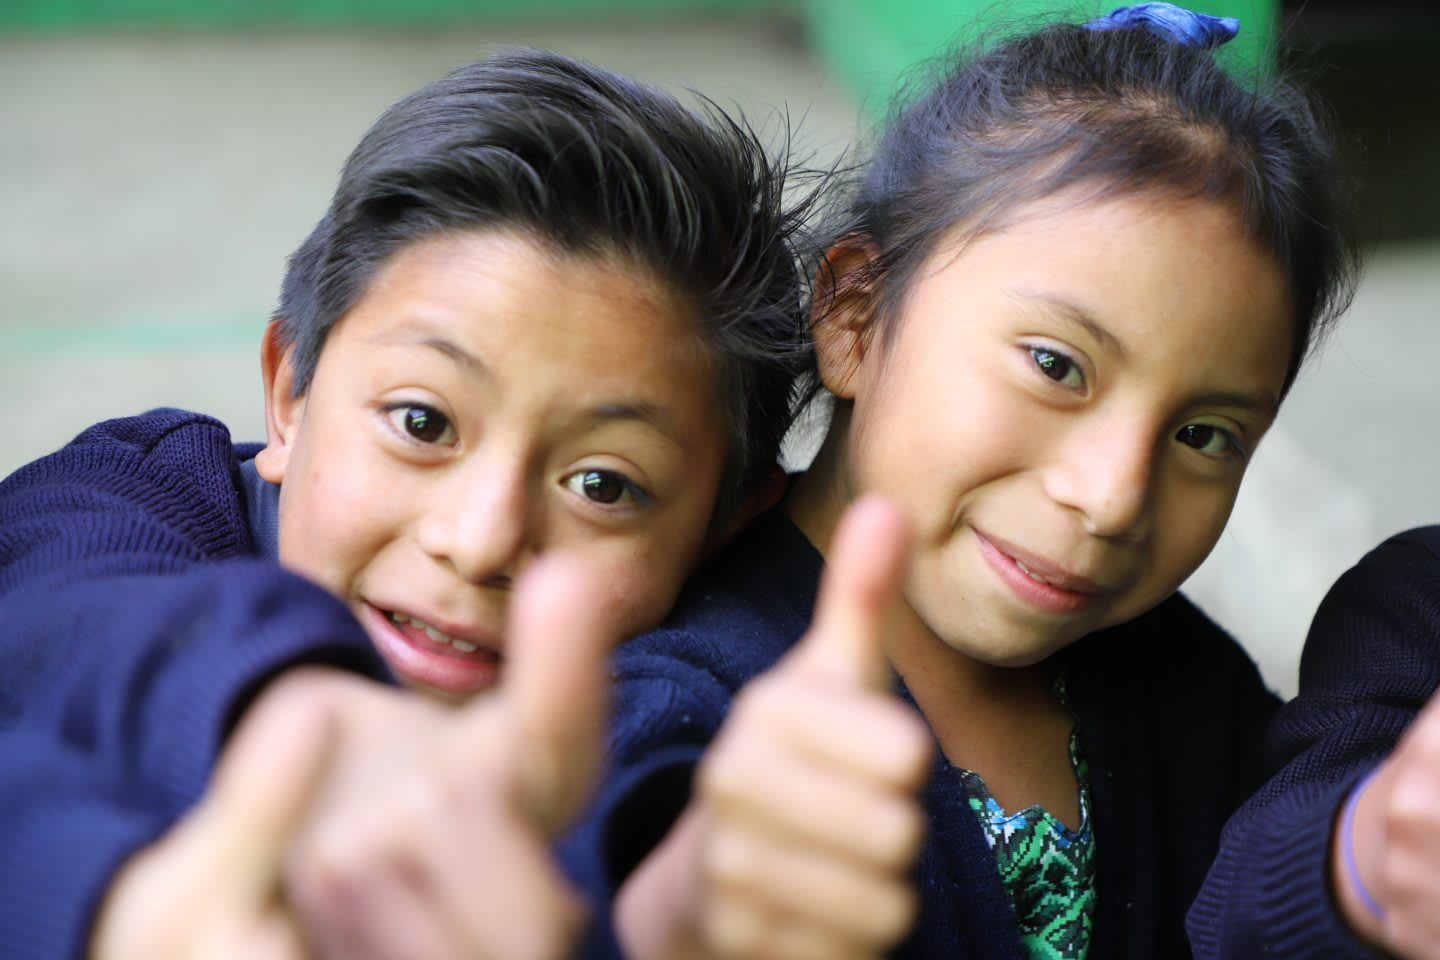 Two children hold their thumbs up smiling. happy, children, accomplishment, proud